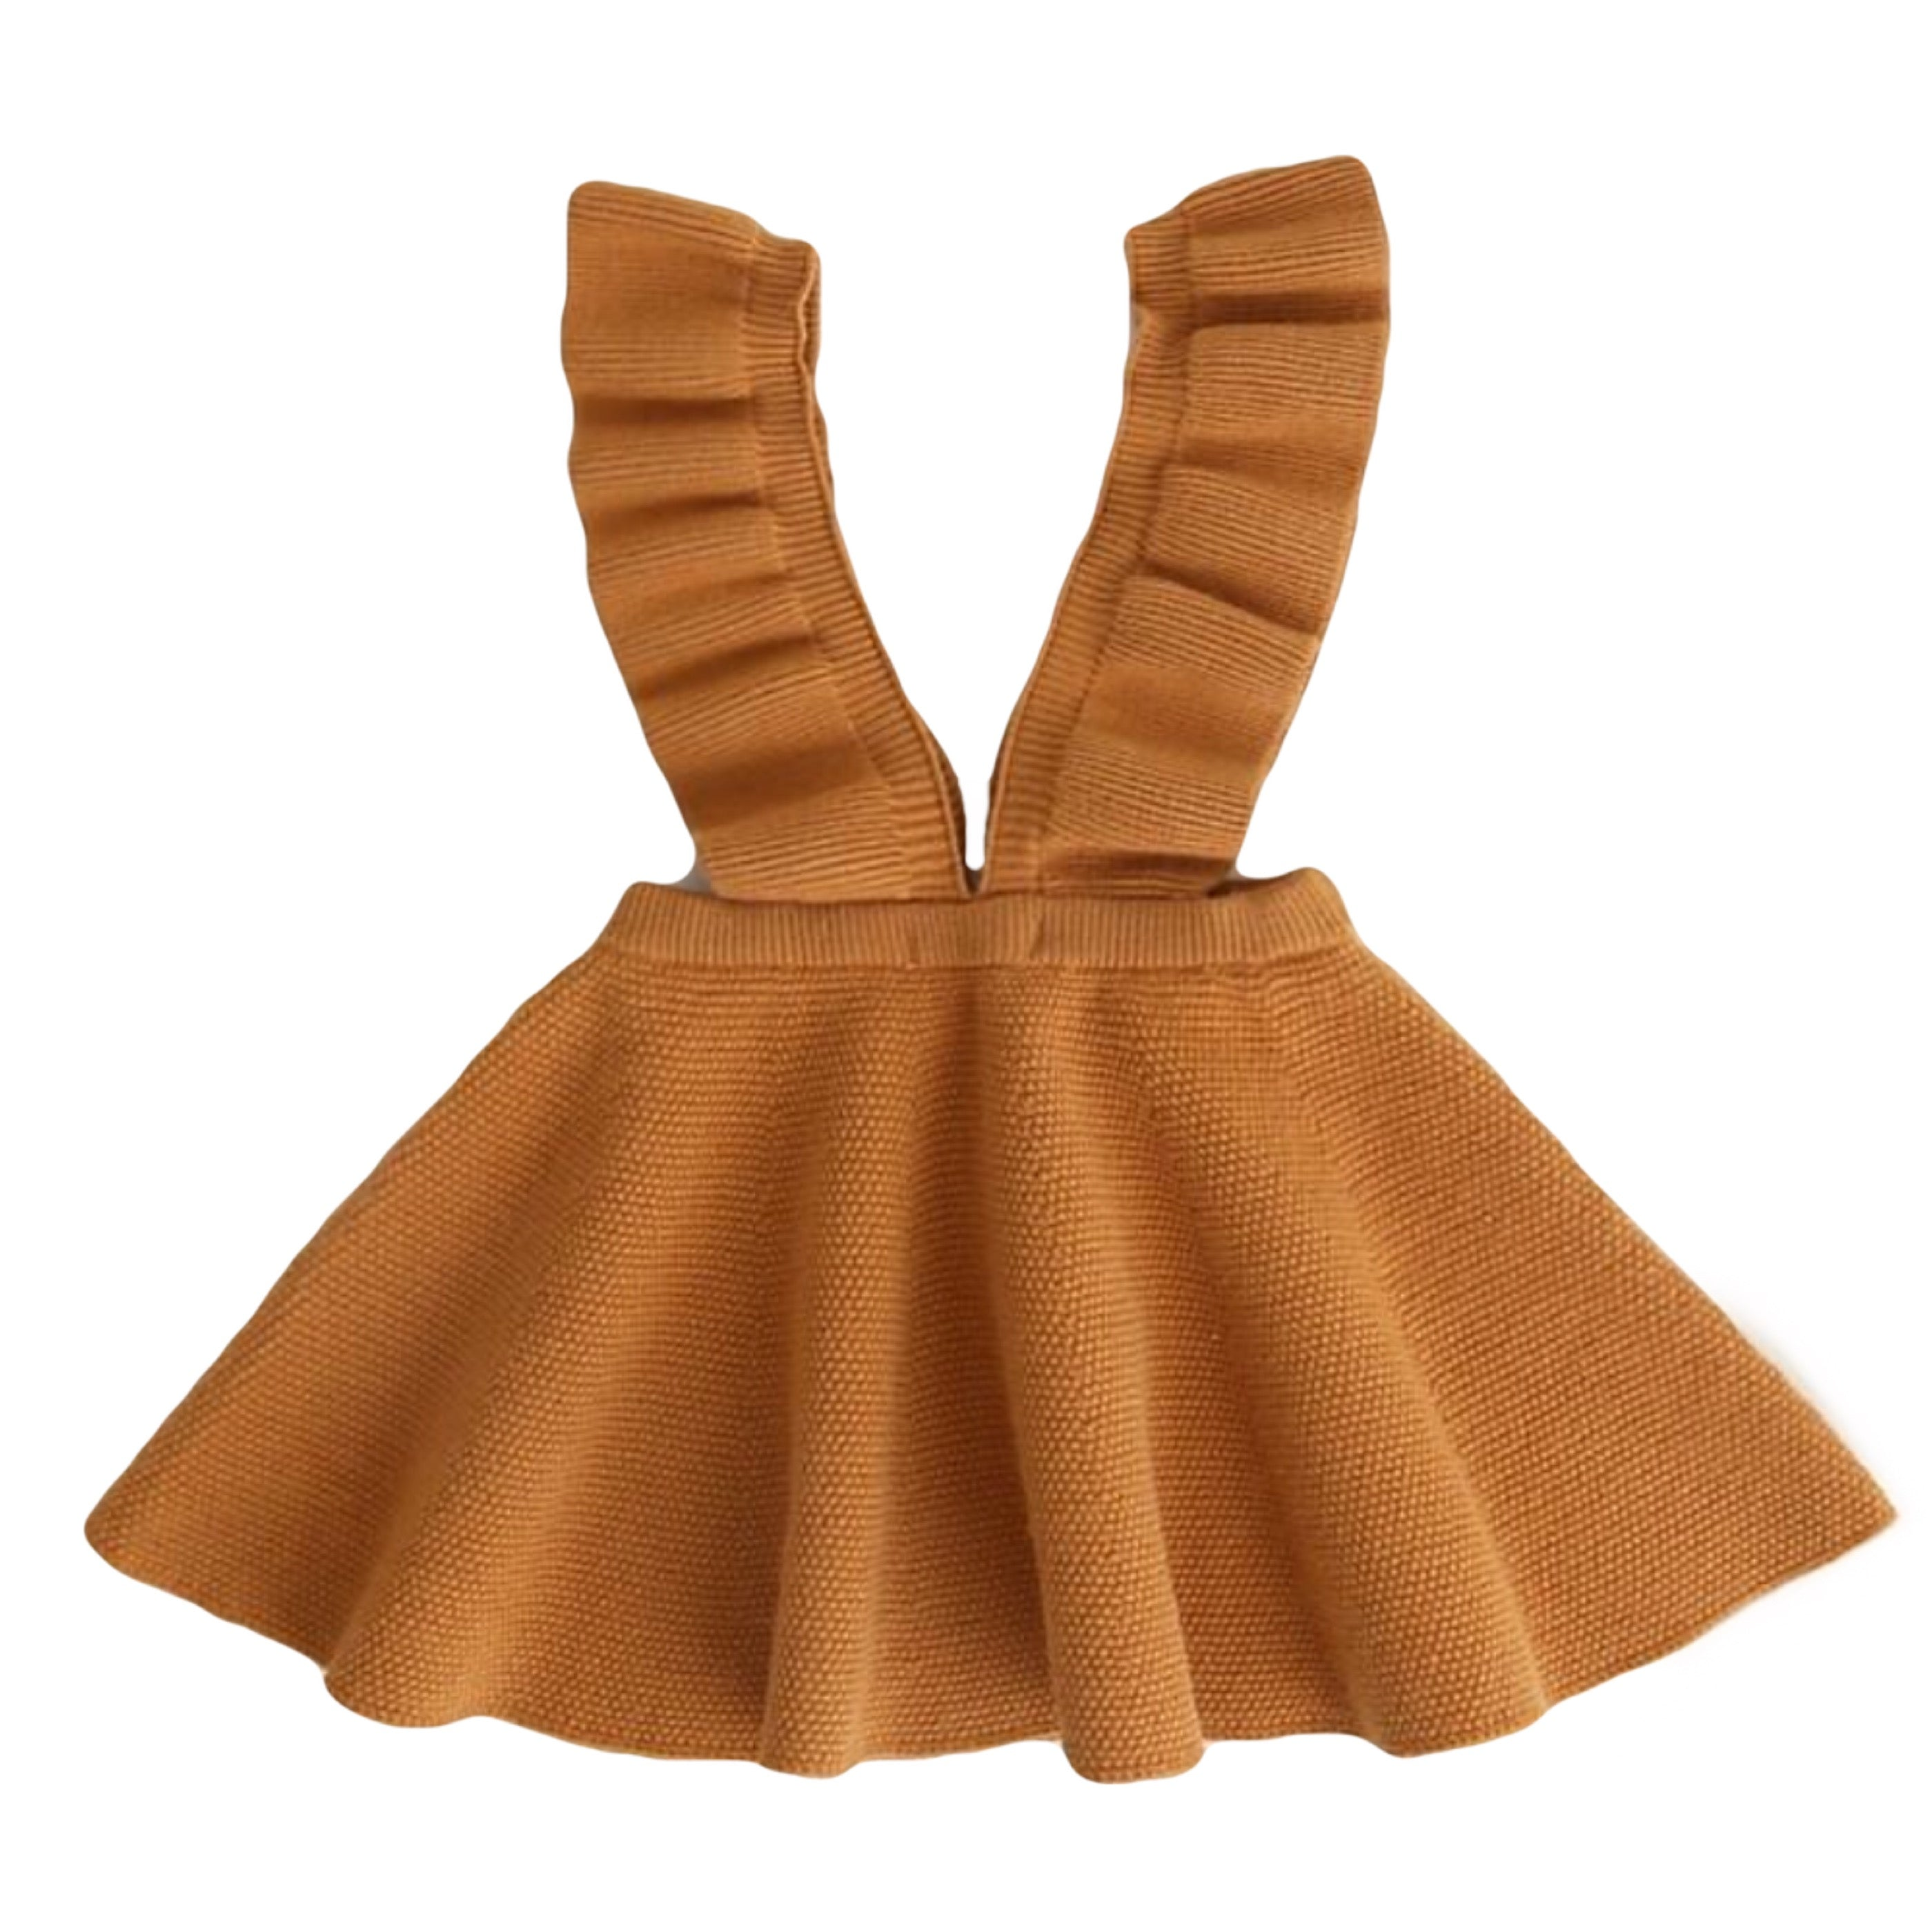 77ed8c9f3d Bridget ~ Tan Overall Dress | Matching Mommy & Me Dresses Collection –  ModerneChild Shoppe